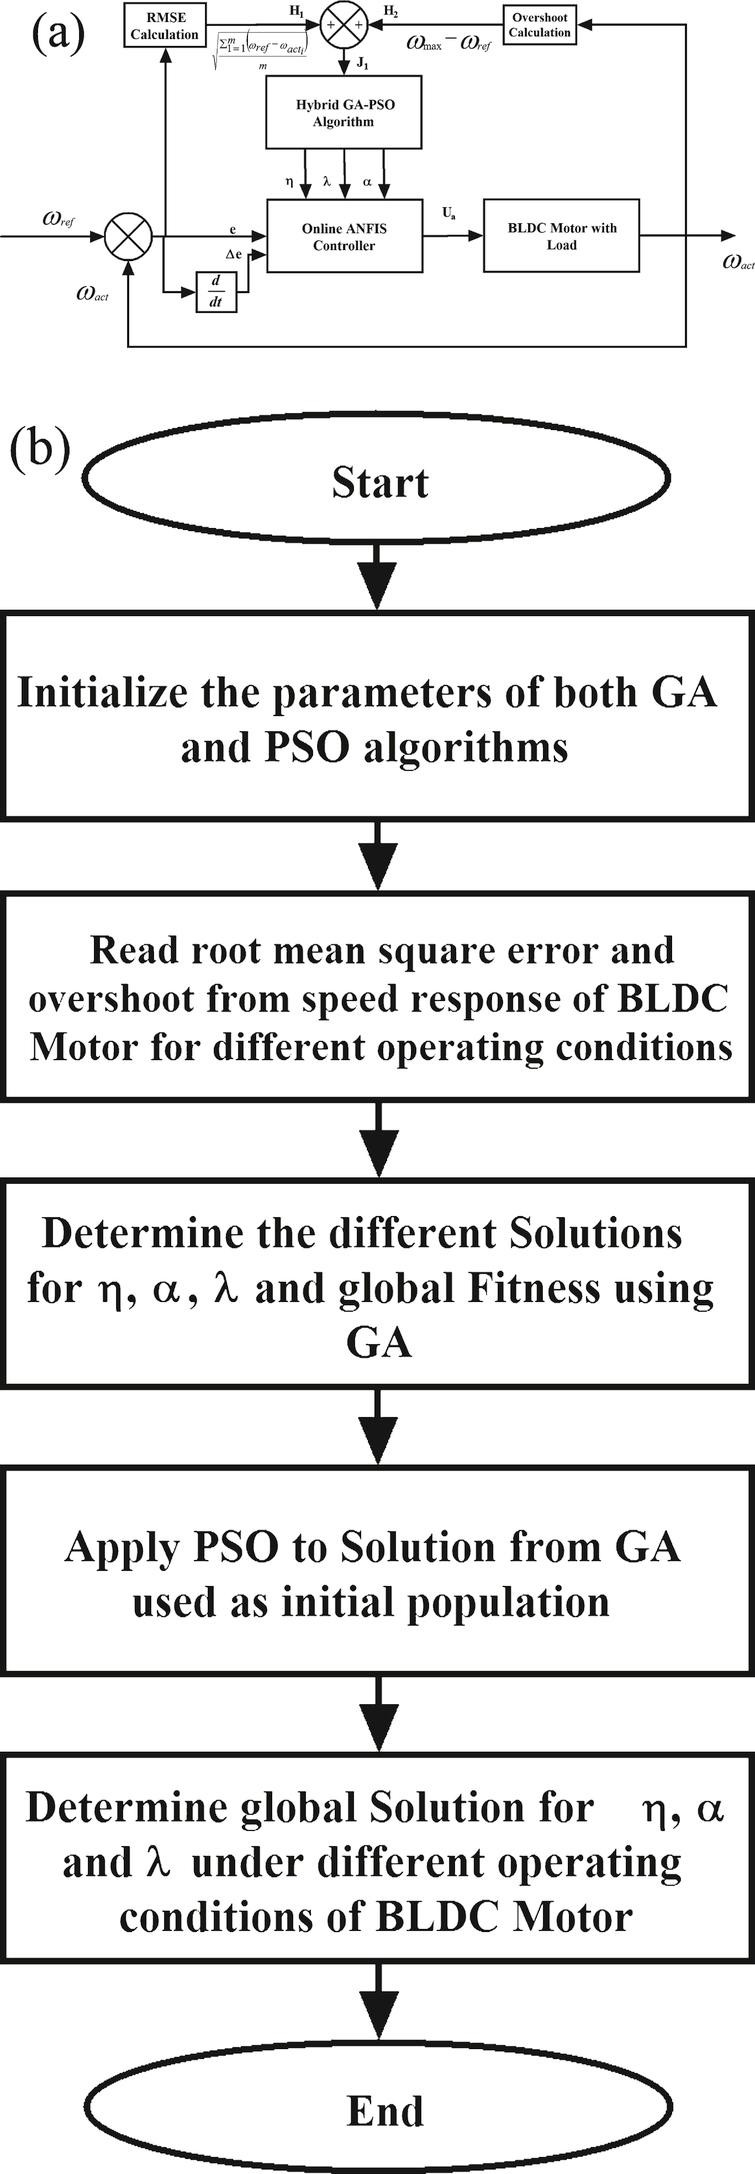 Ga Pso Optimized Online Anfis Based Speed Controller For Brushless Figure 4 Closed Loop Dc Motor Control Circuit With The A Hybrid Approach Tuning Of Learning Parameters